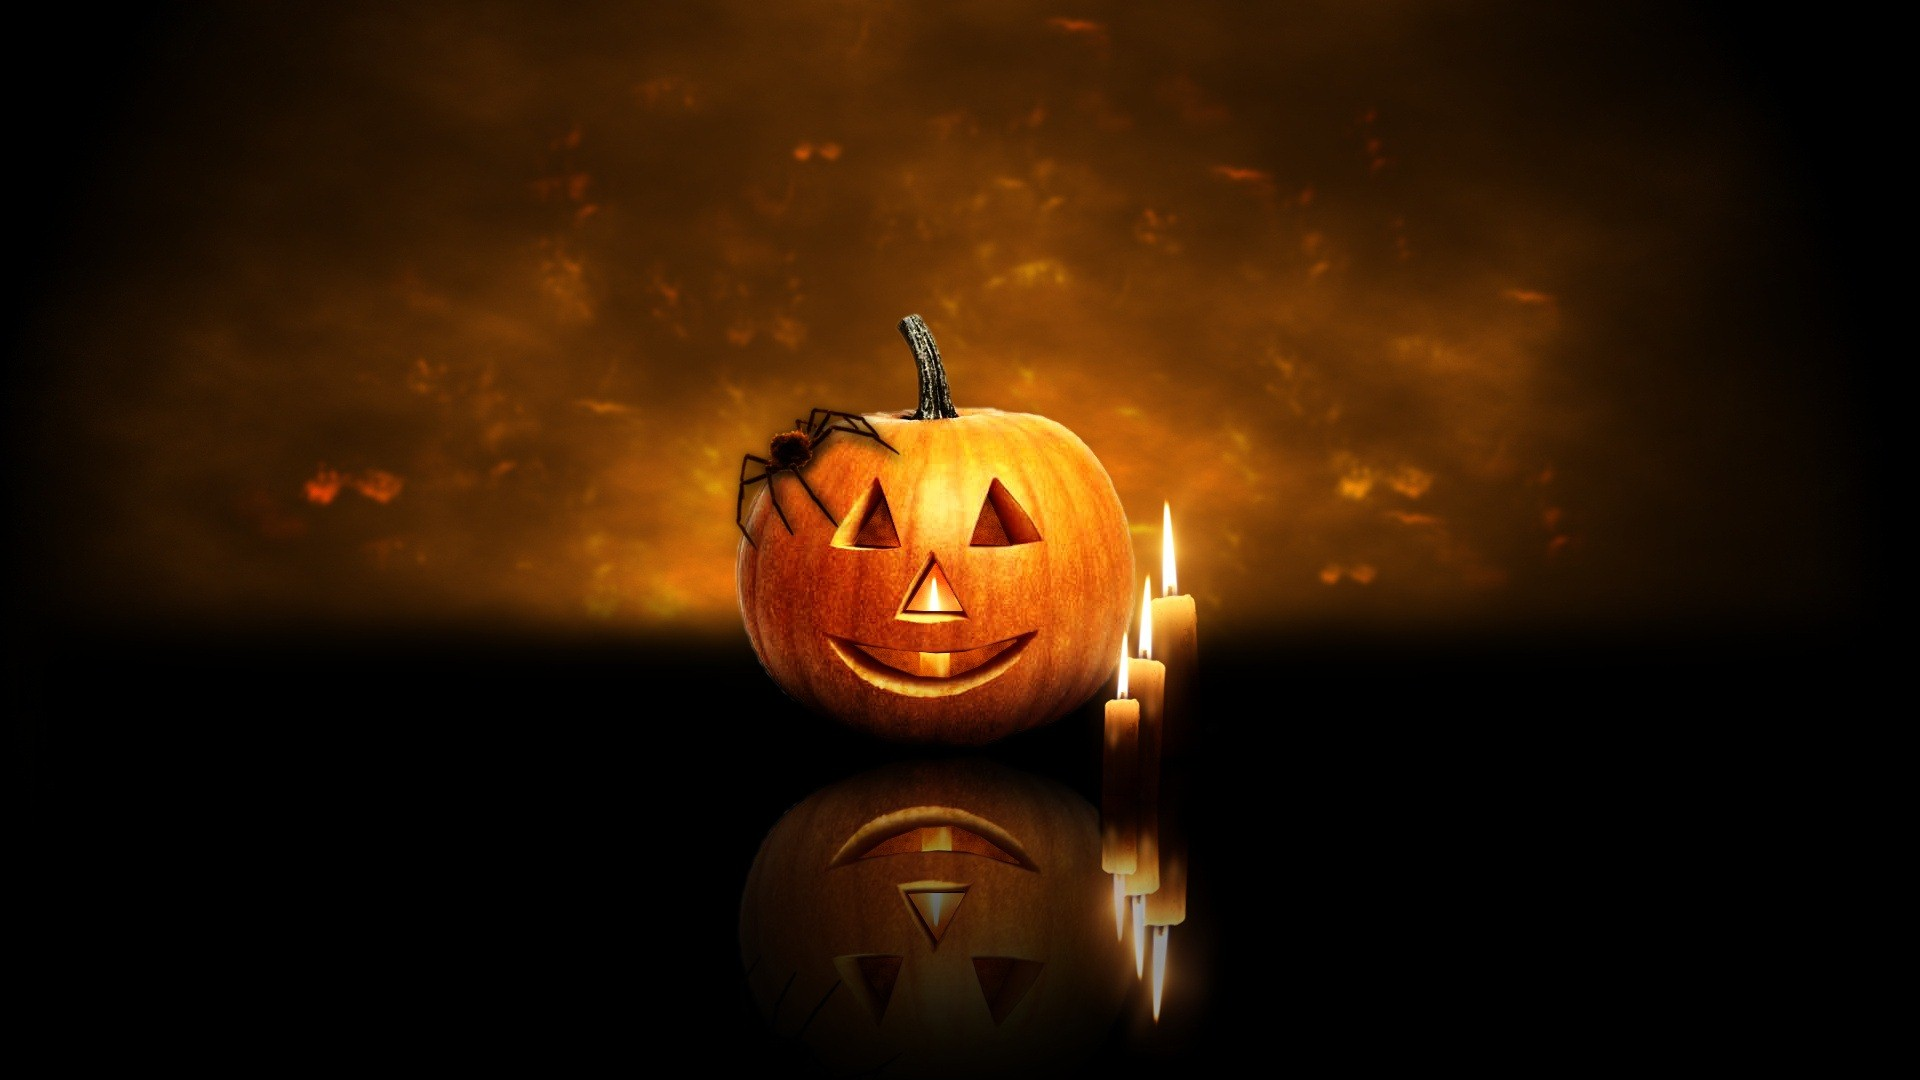 Halloween Pumpkin Backgrounds Free Download.